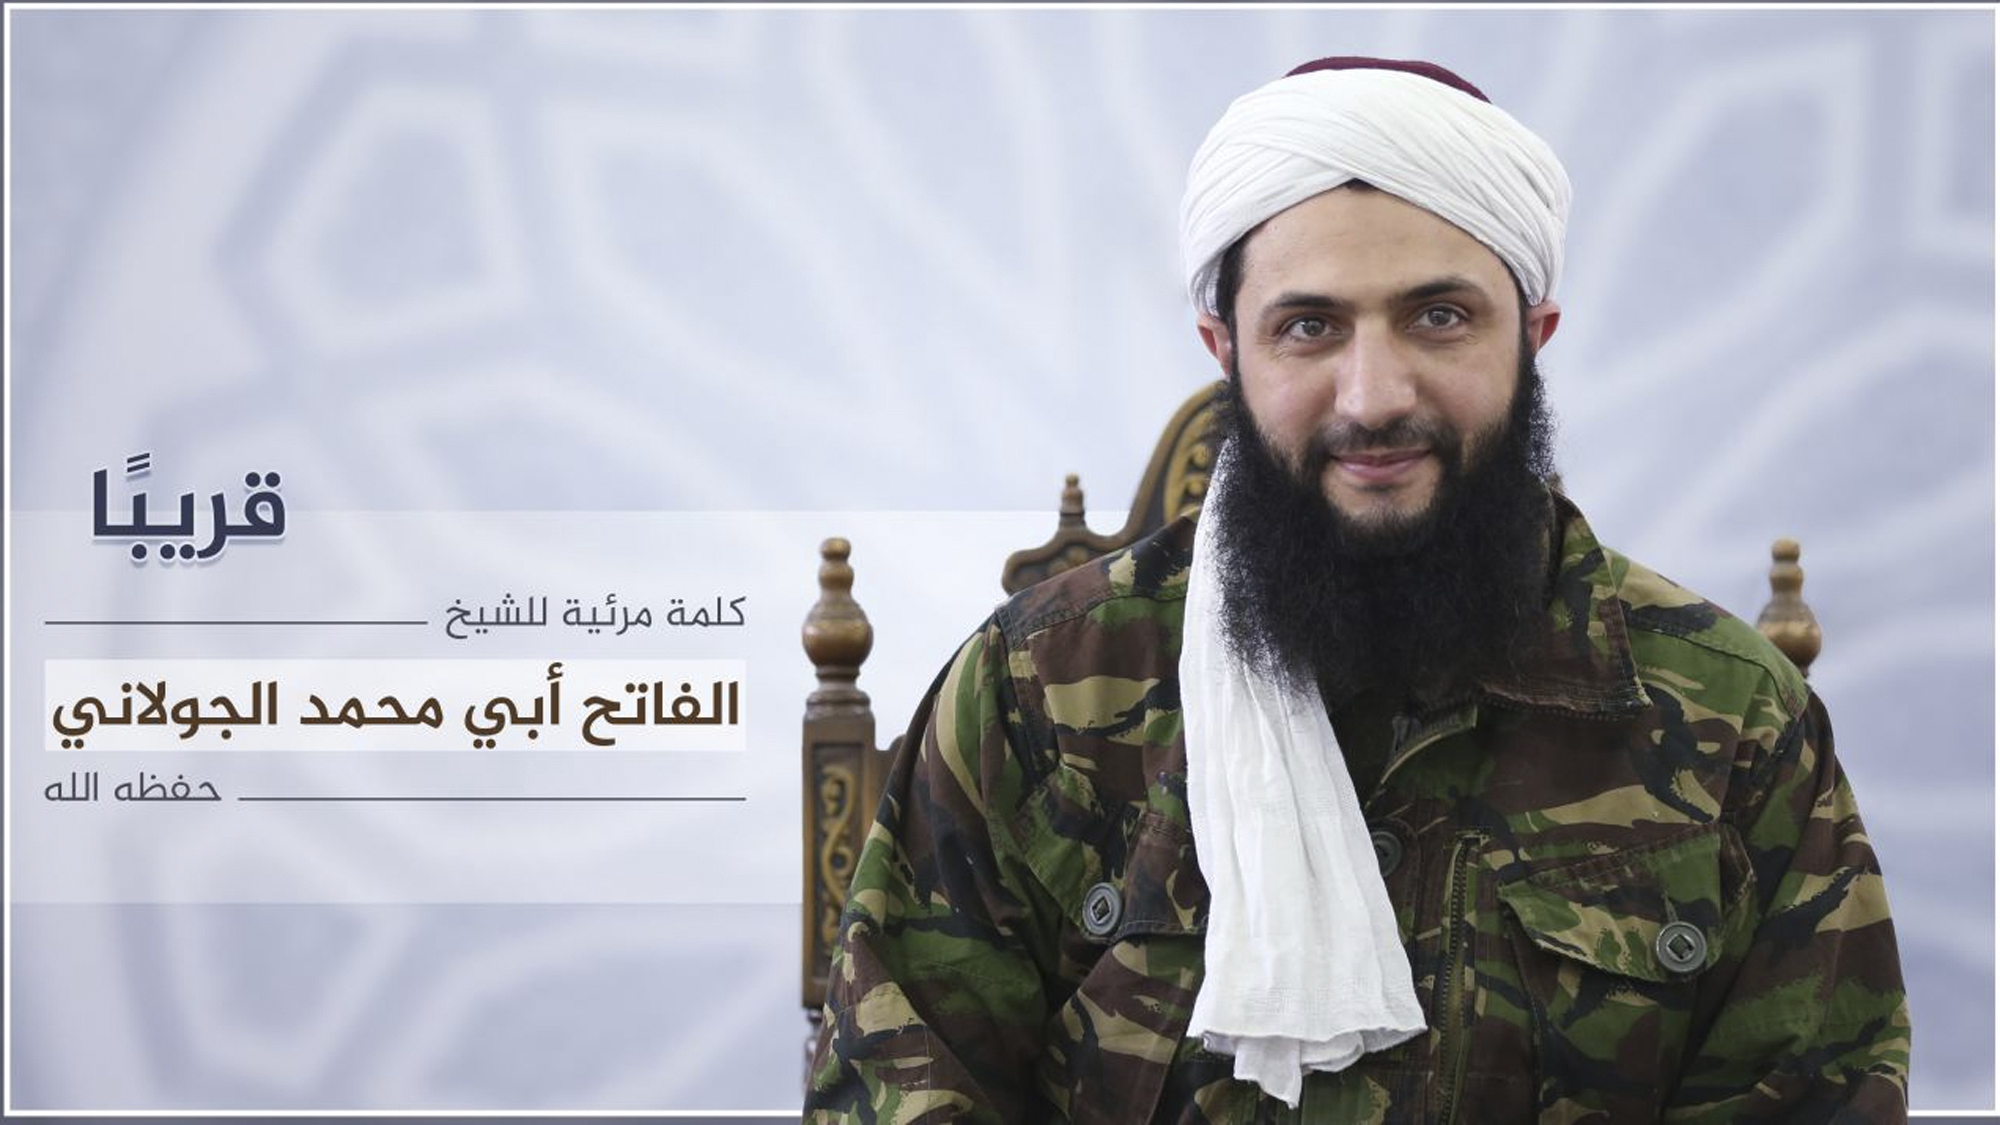 An undated militant photo released online on July 28, 2016, shows Abu Mohammad al-Julani. The Nusra Front leader announced in a video message that the militant group is changing its name and claims it will have no more ties with al-Qaeda. The video was aired on the Syrian opposition station Orient TV and Al-Jazeera.